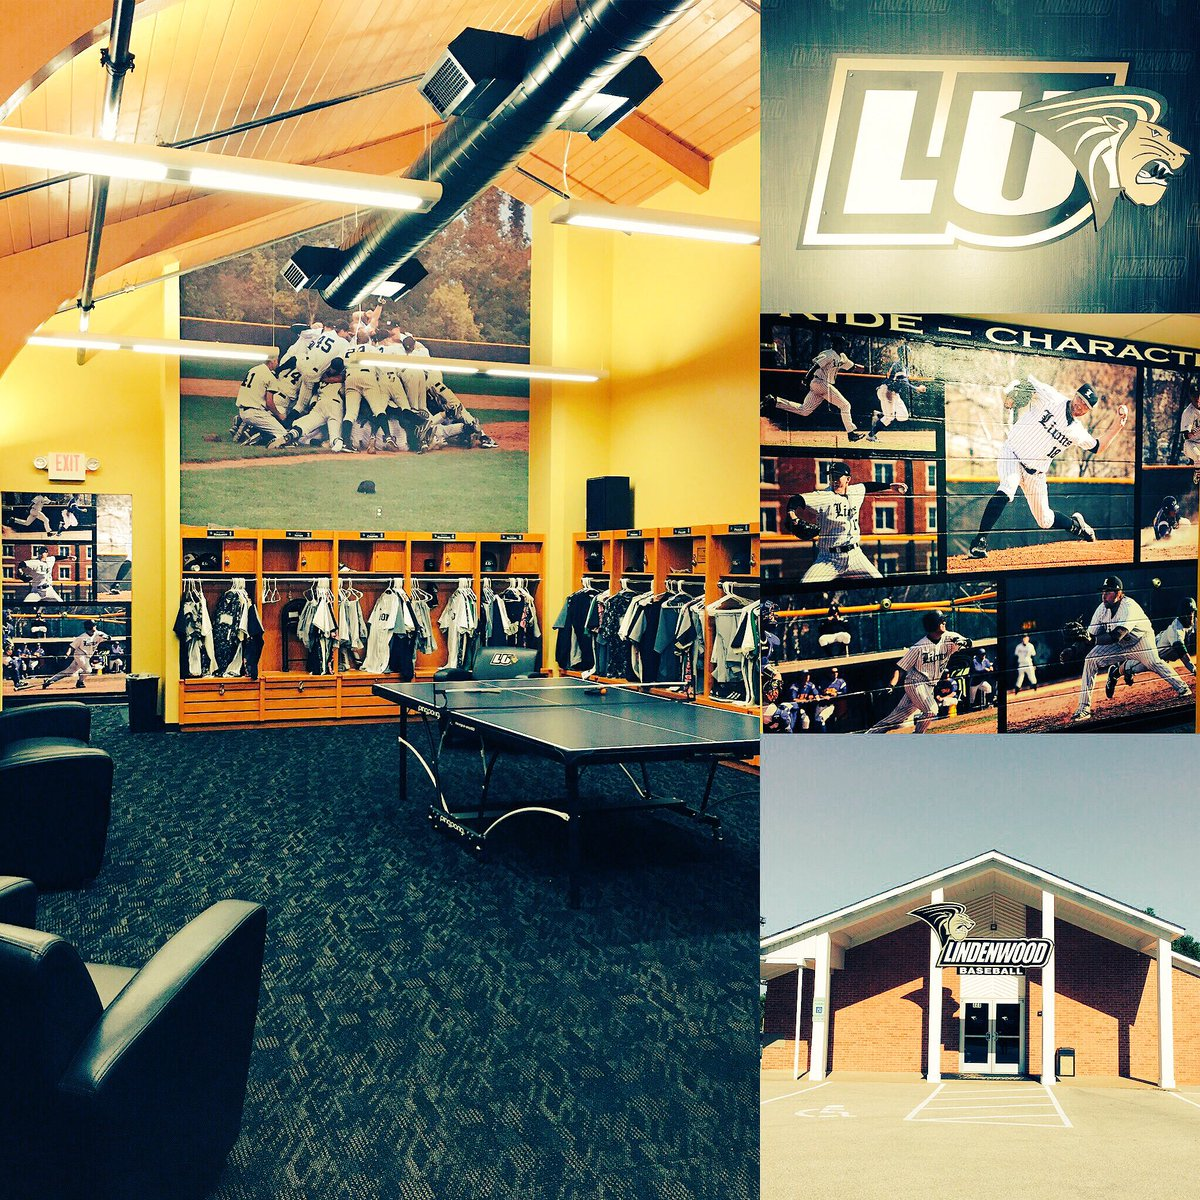 baseball spec and open no new room of arlington sports site the mavericks official m locker basebl rel facilities ut utamavs softball com